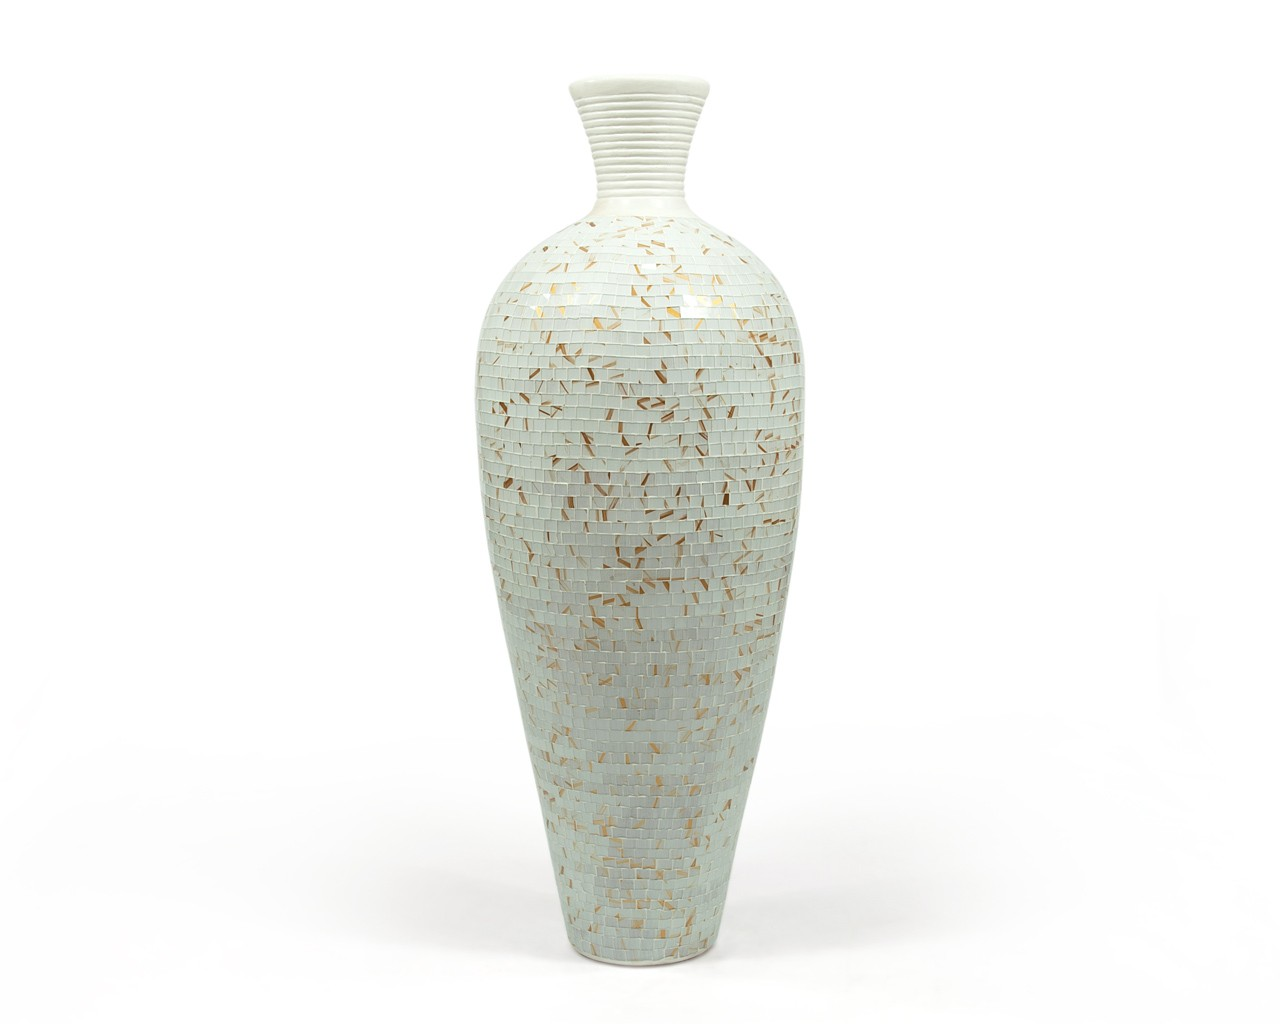 Extra Large Ceramic Vases Bing Images